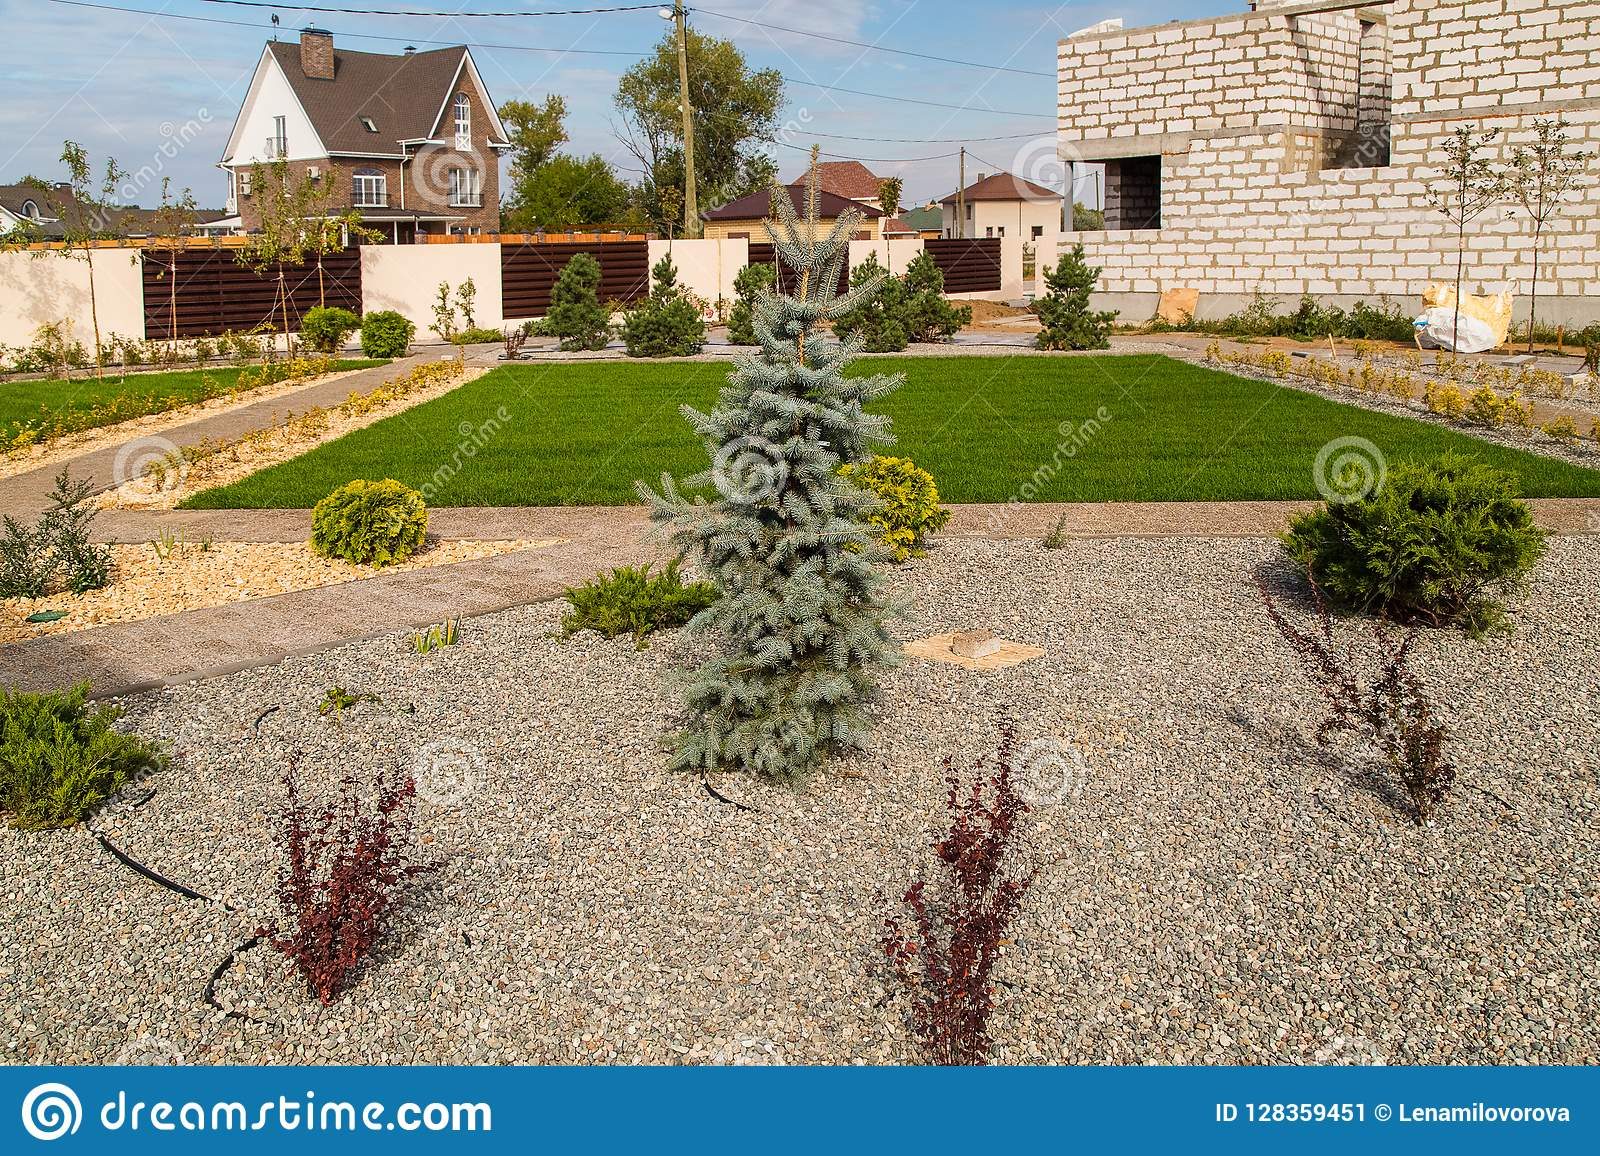 Country house and green lawn. Landscape design.